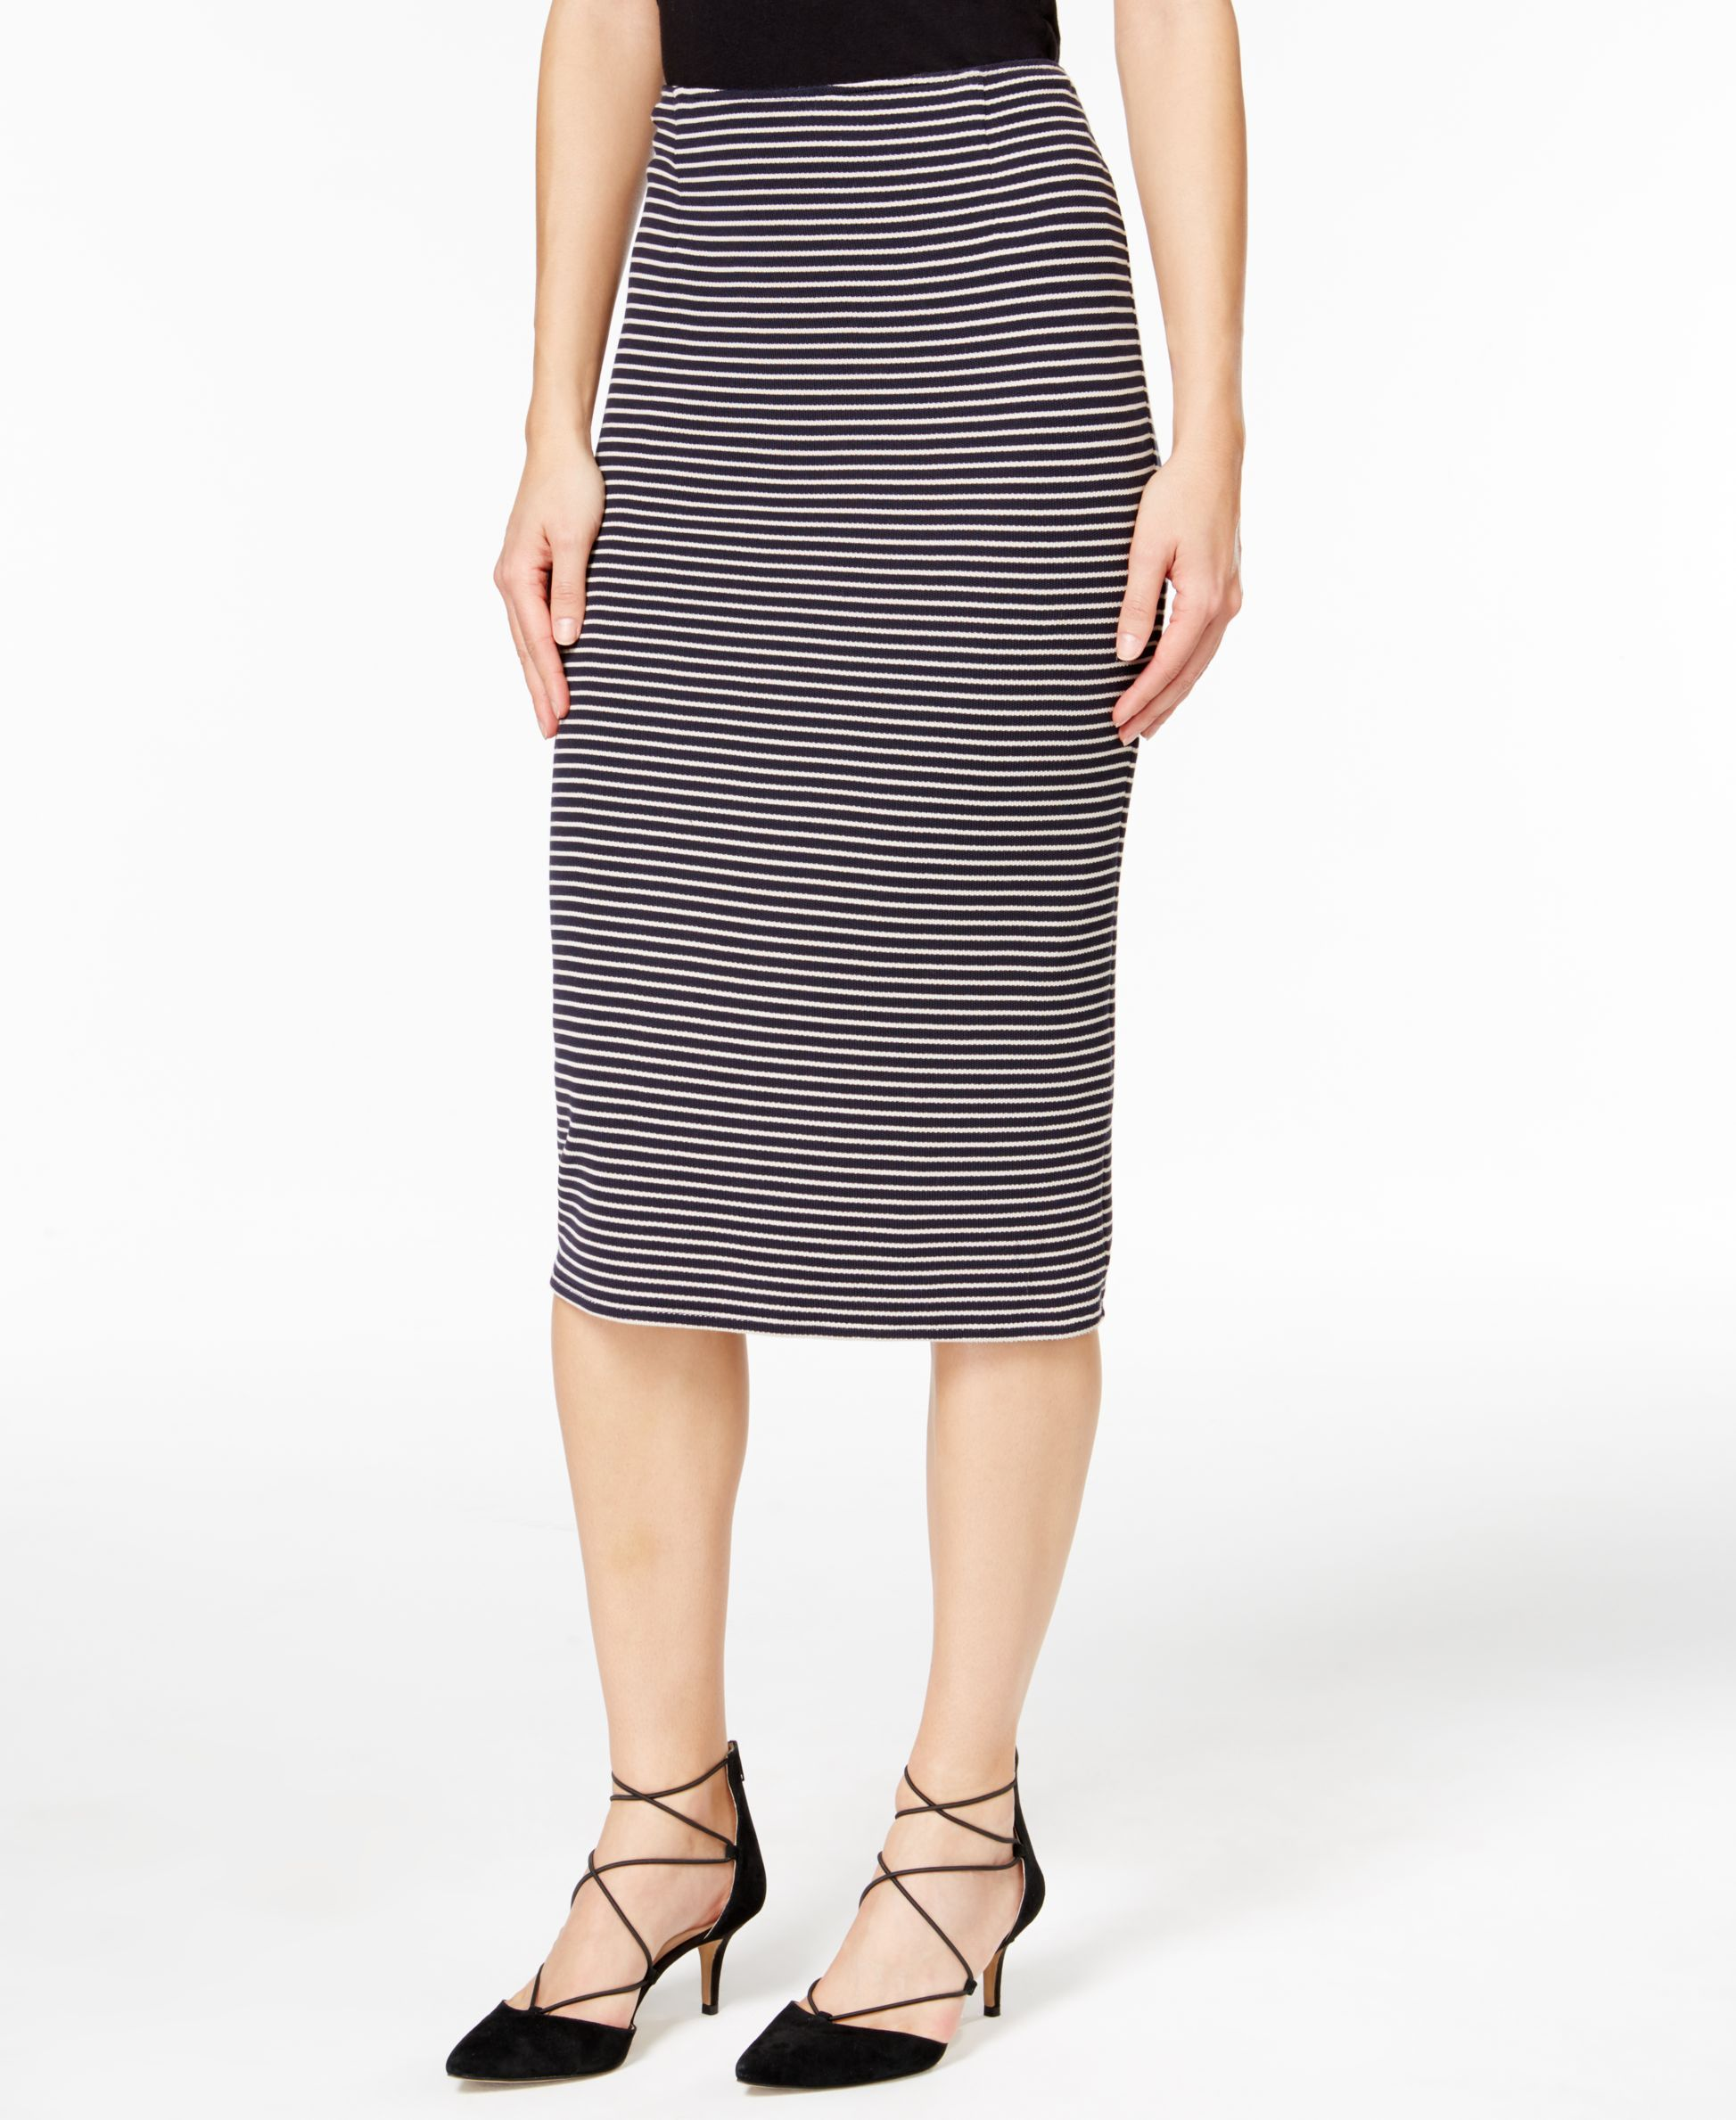 5fcb594e35 Weekend Max Mara Striped Pencil Skirt | Products | Stripe skirt ...